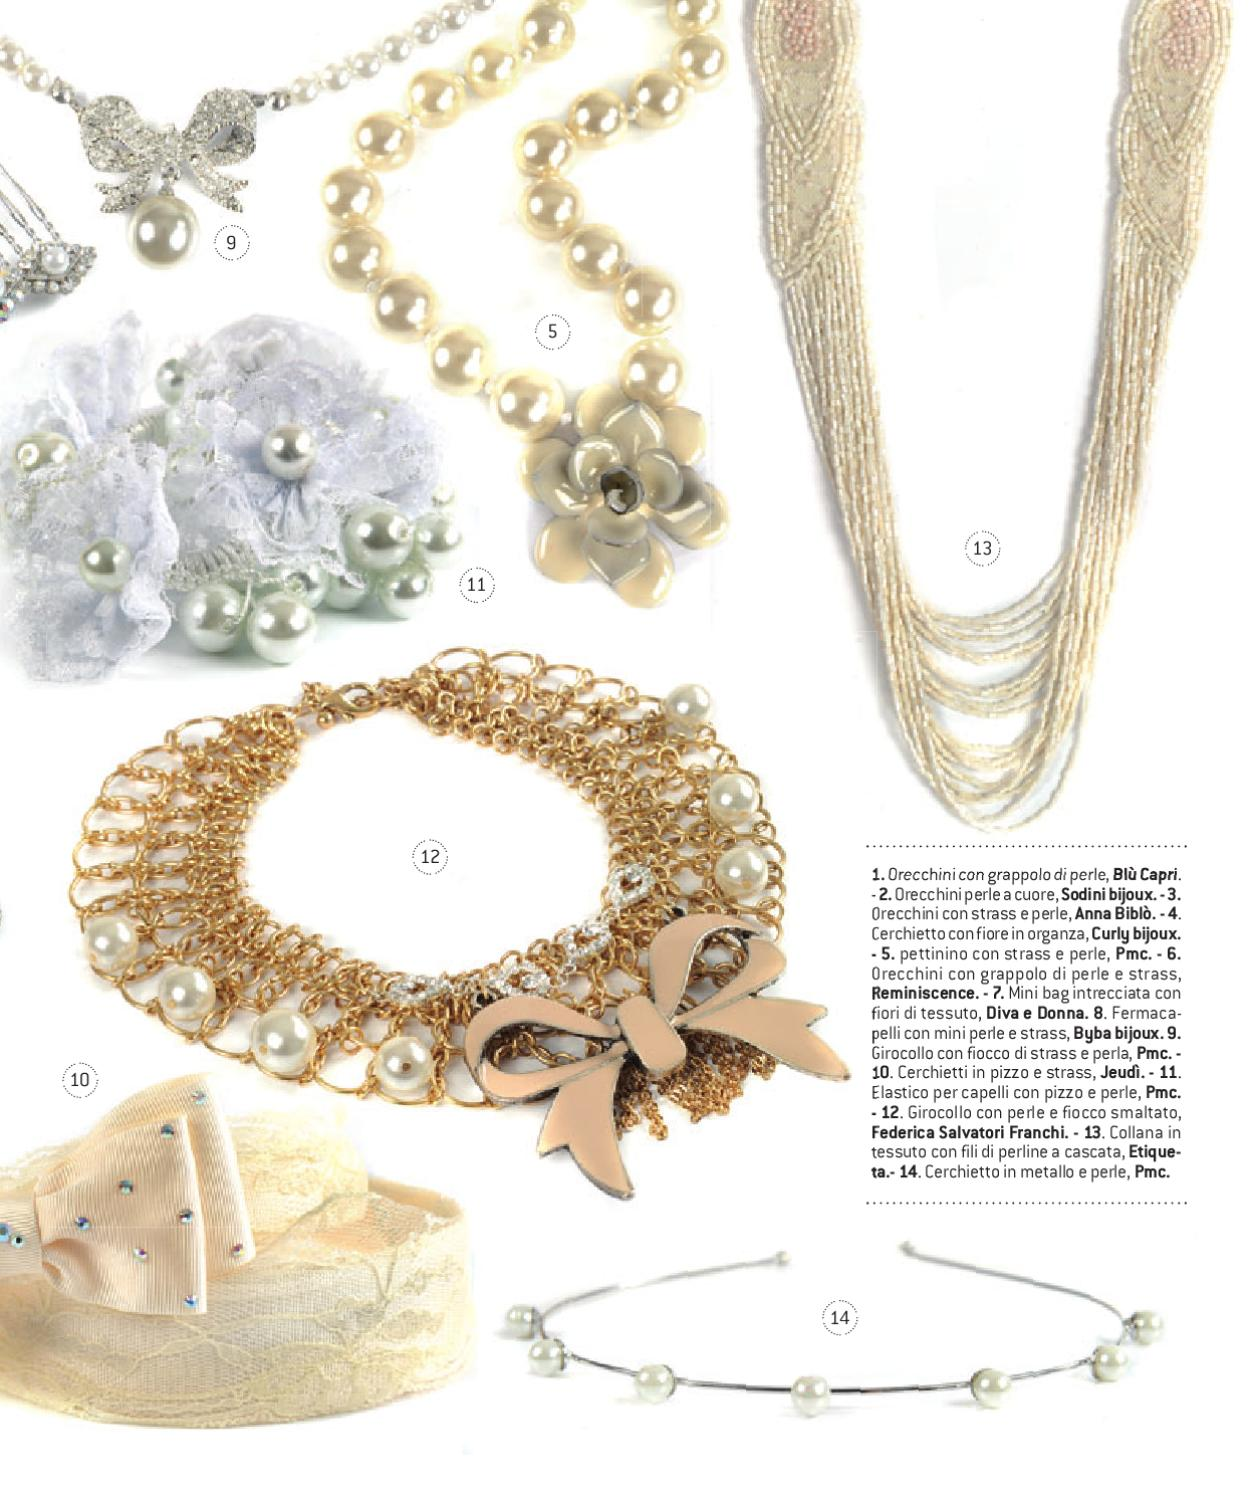 2010 By Luxury AccessoiresN Daily 2 Maggio Issuu MqVSUzpG